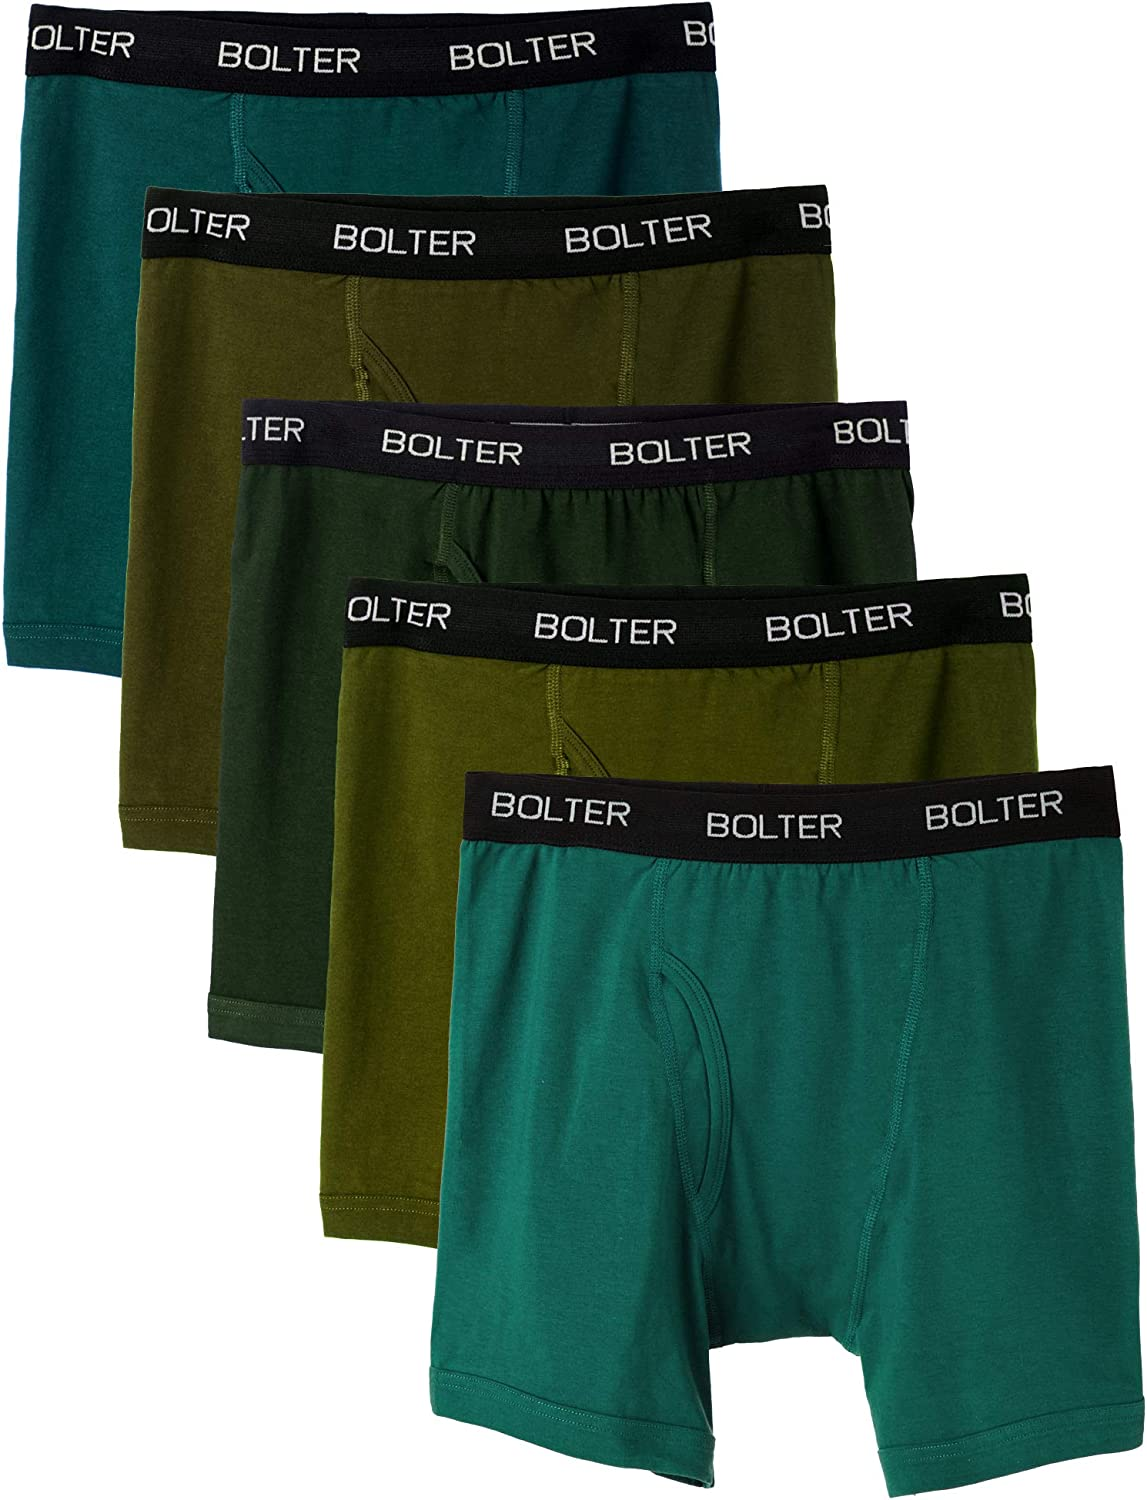 Bolter Men's Cotton Spandex All Day Boxer Briefs 5-Pack